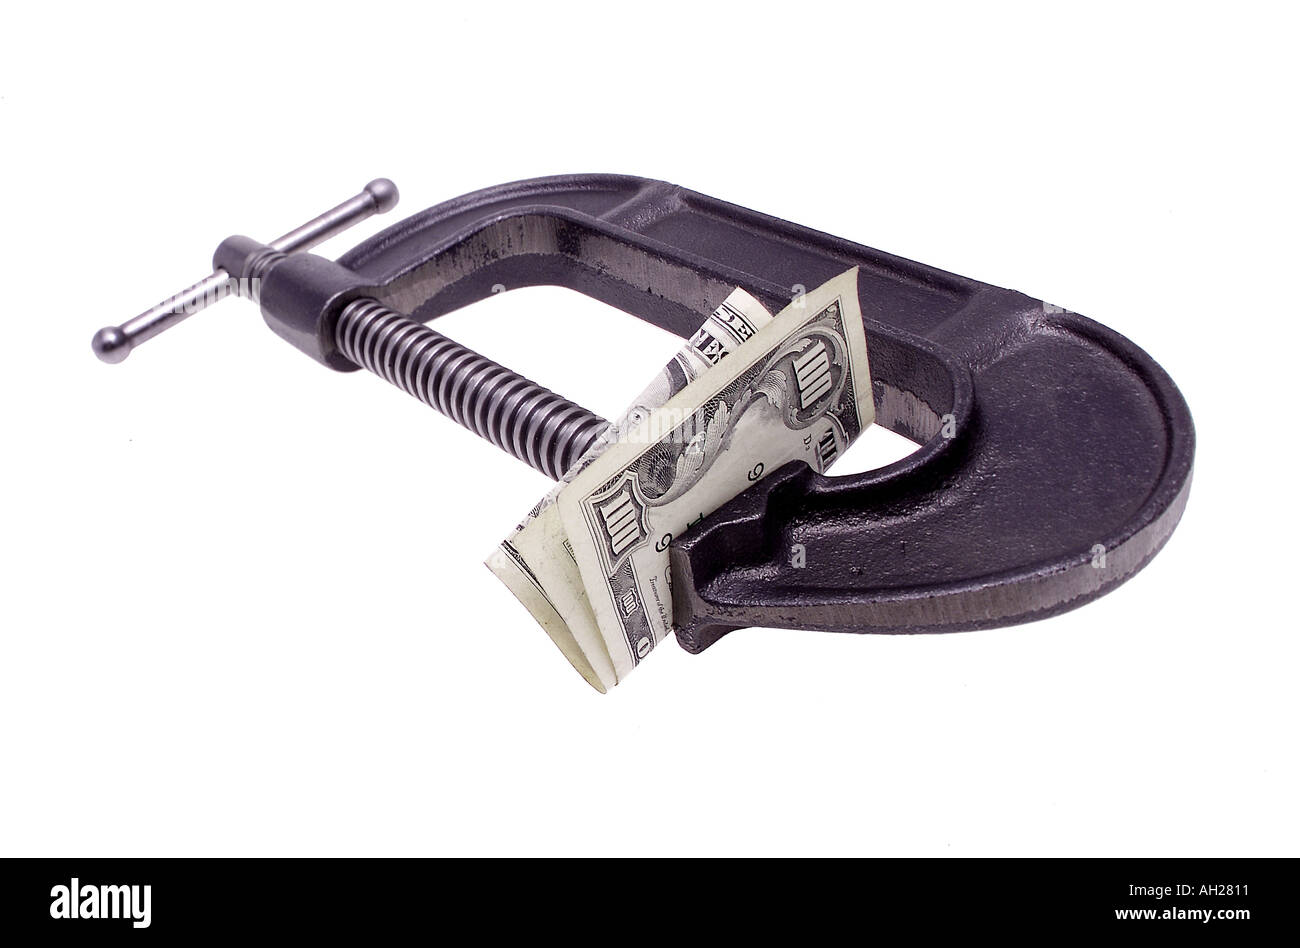 hundred dollar bill in a C clamp silhouetted on white background - Stock Image